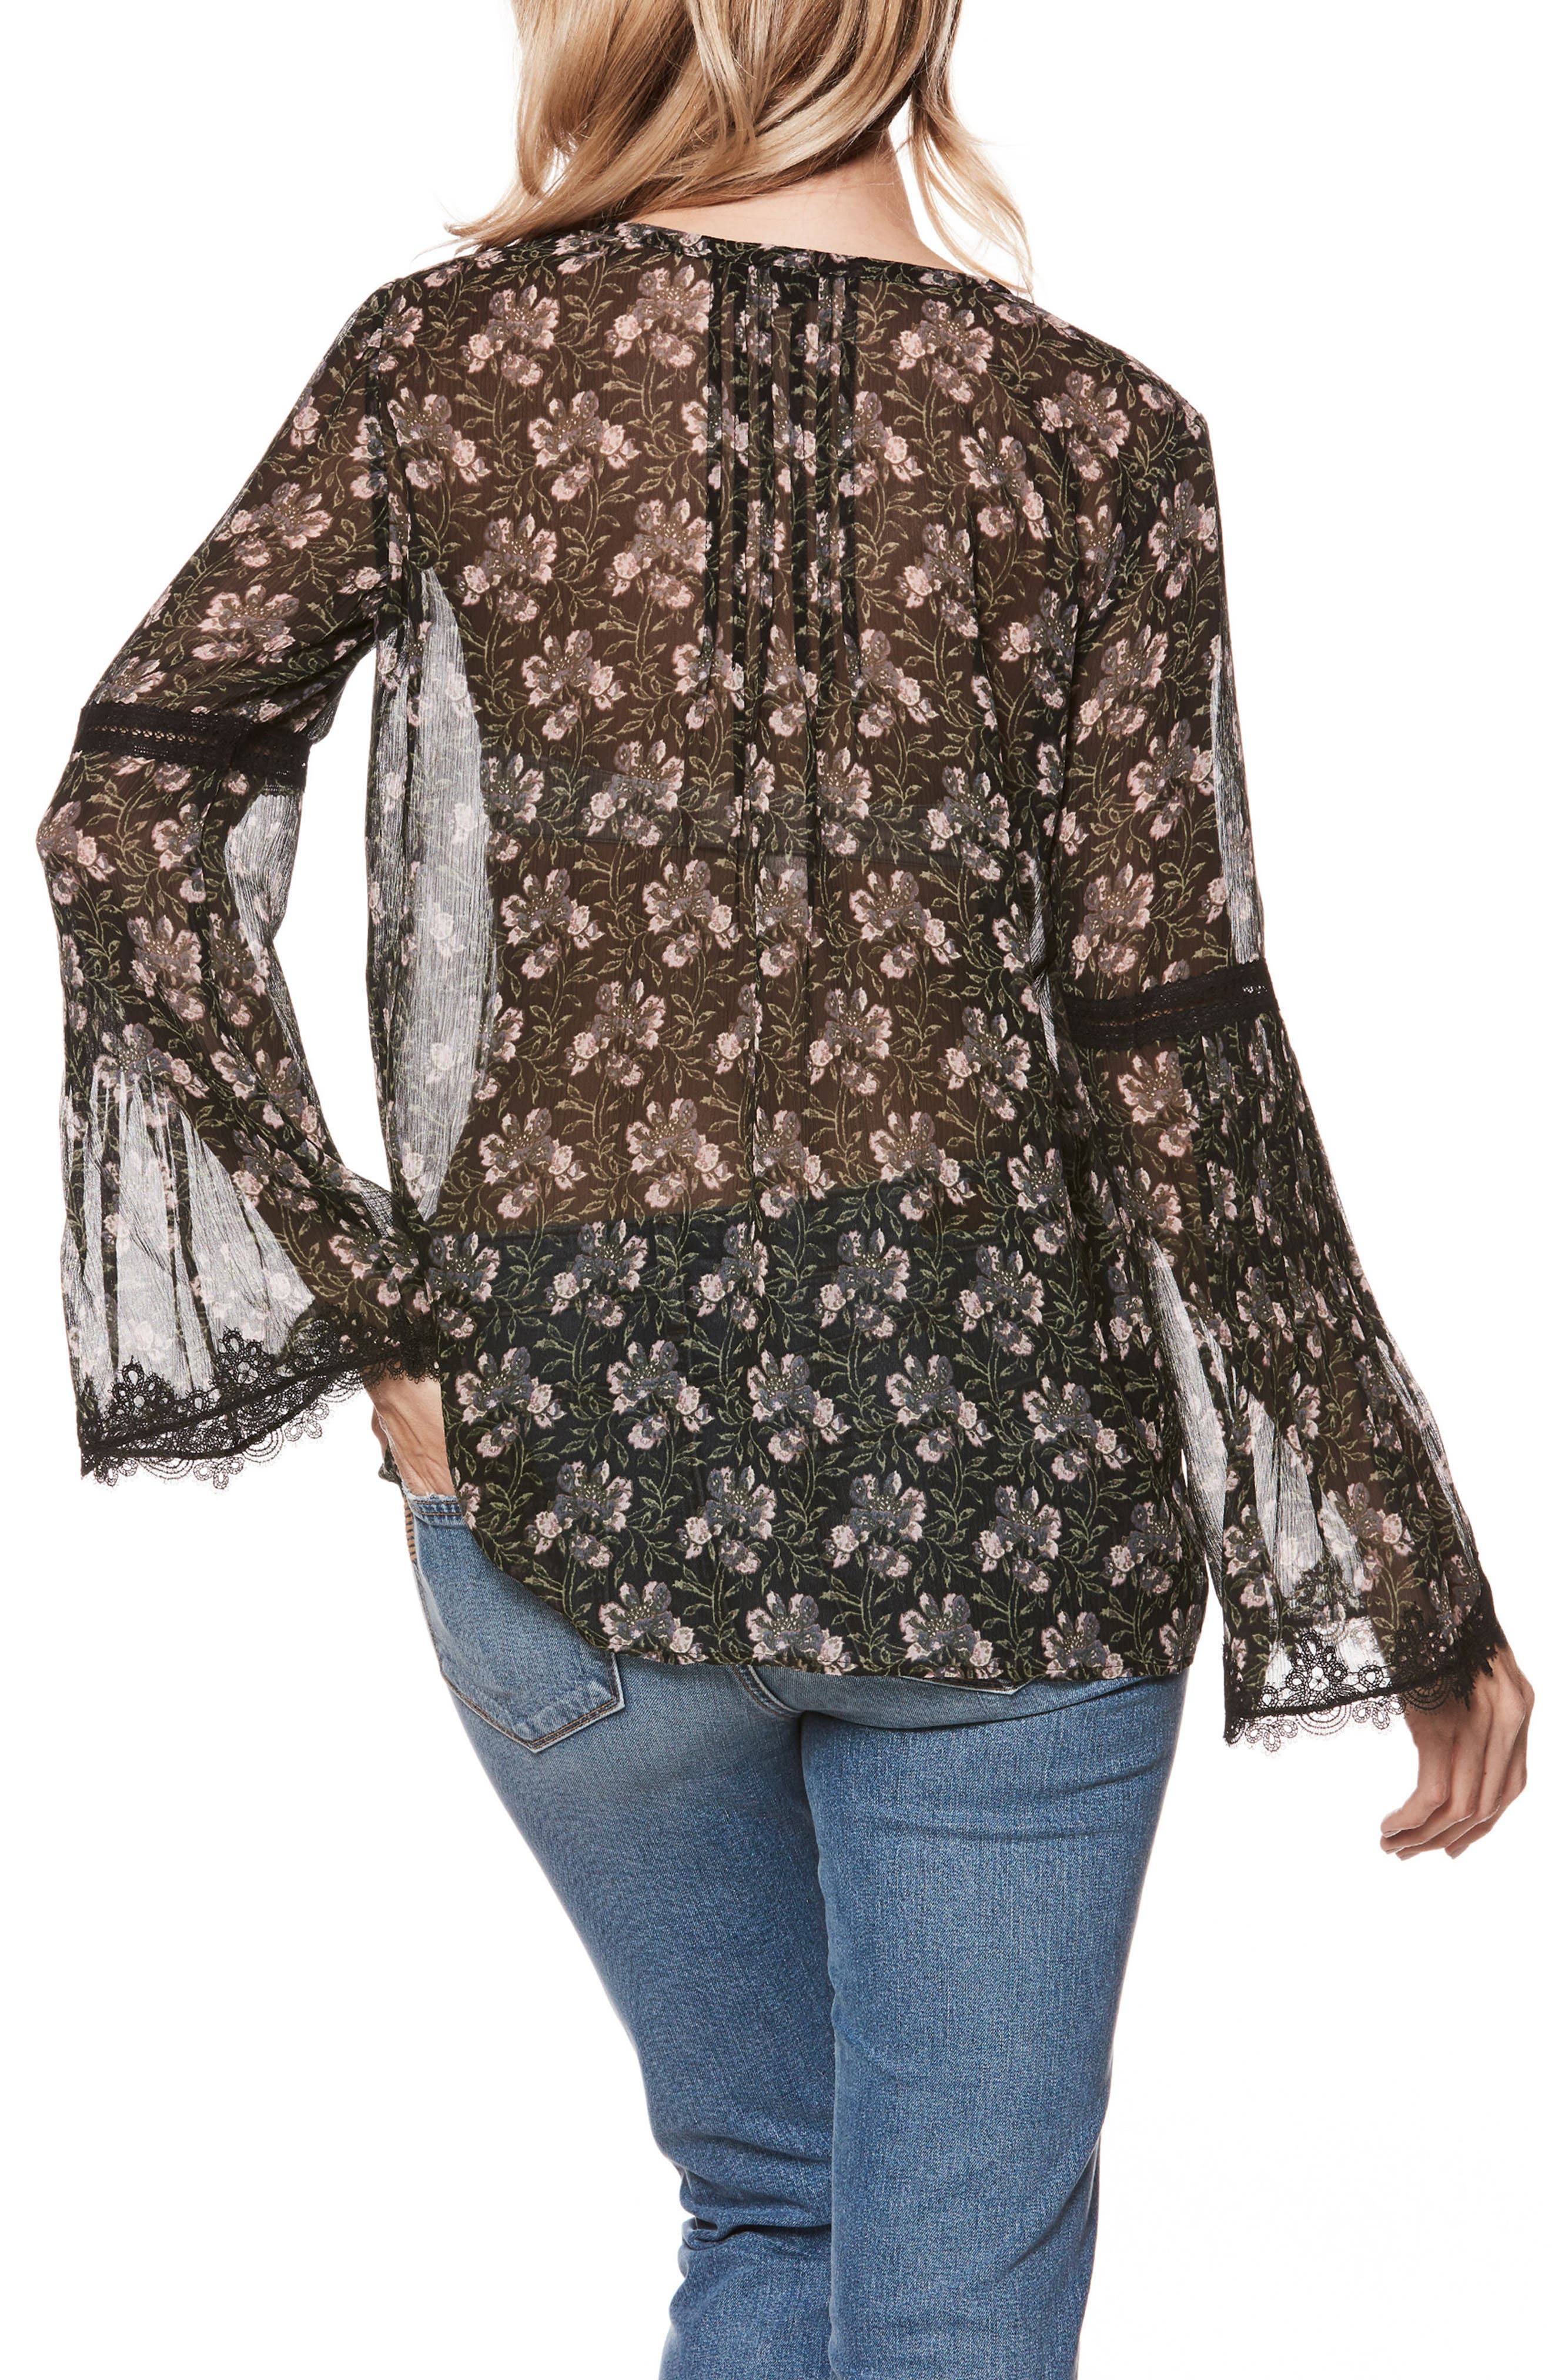 Clio Floral Bell Sleeve Silk Blouse,                             Alternate thumbnail 2, color,                             Storm Cloud Floral